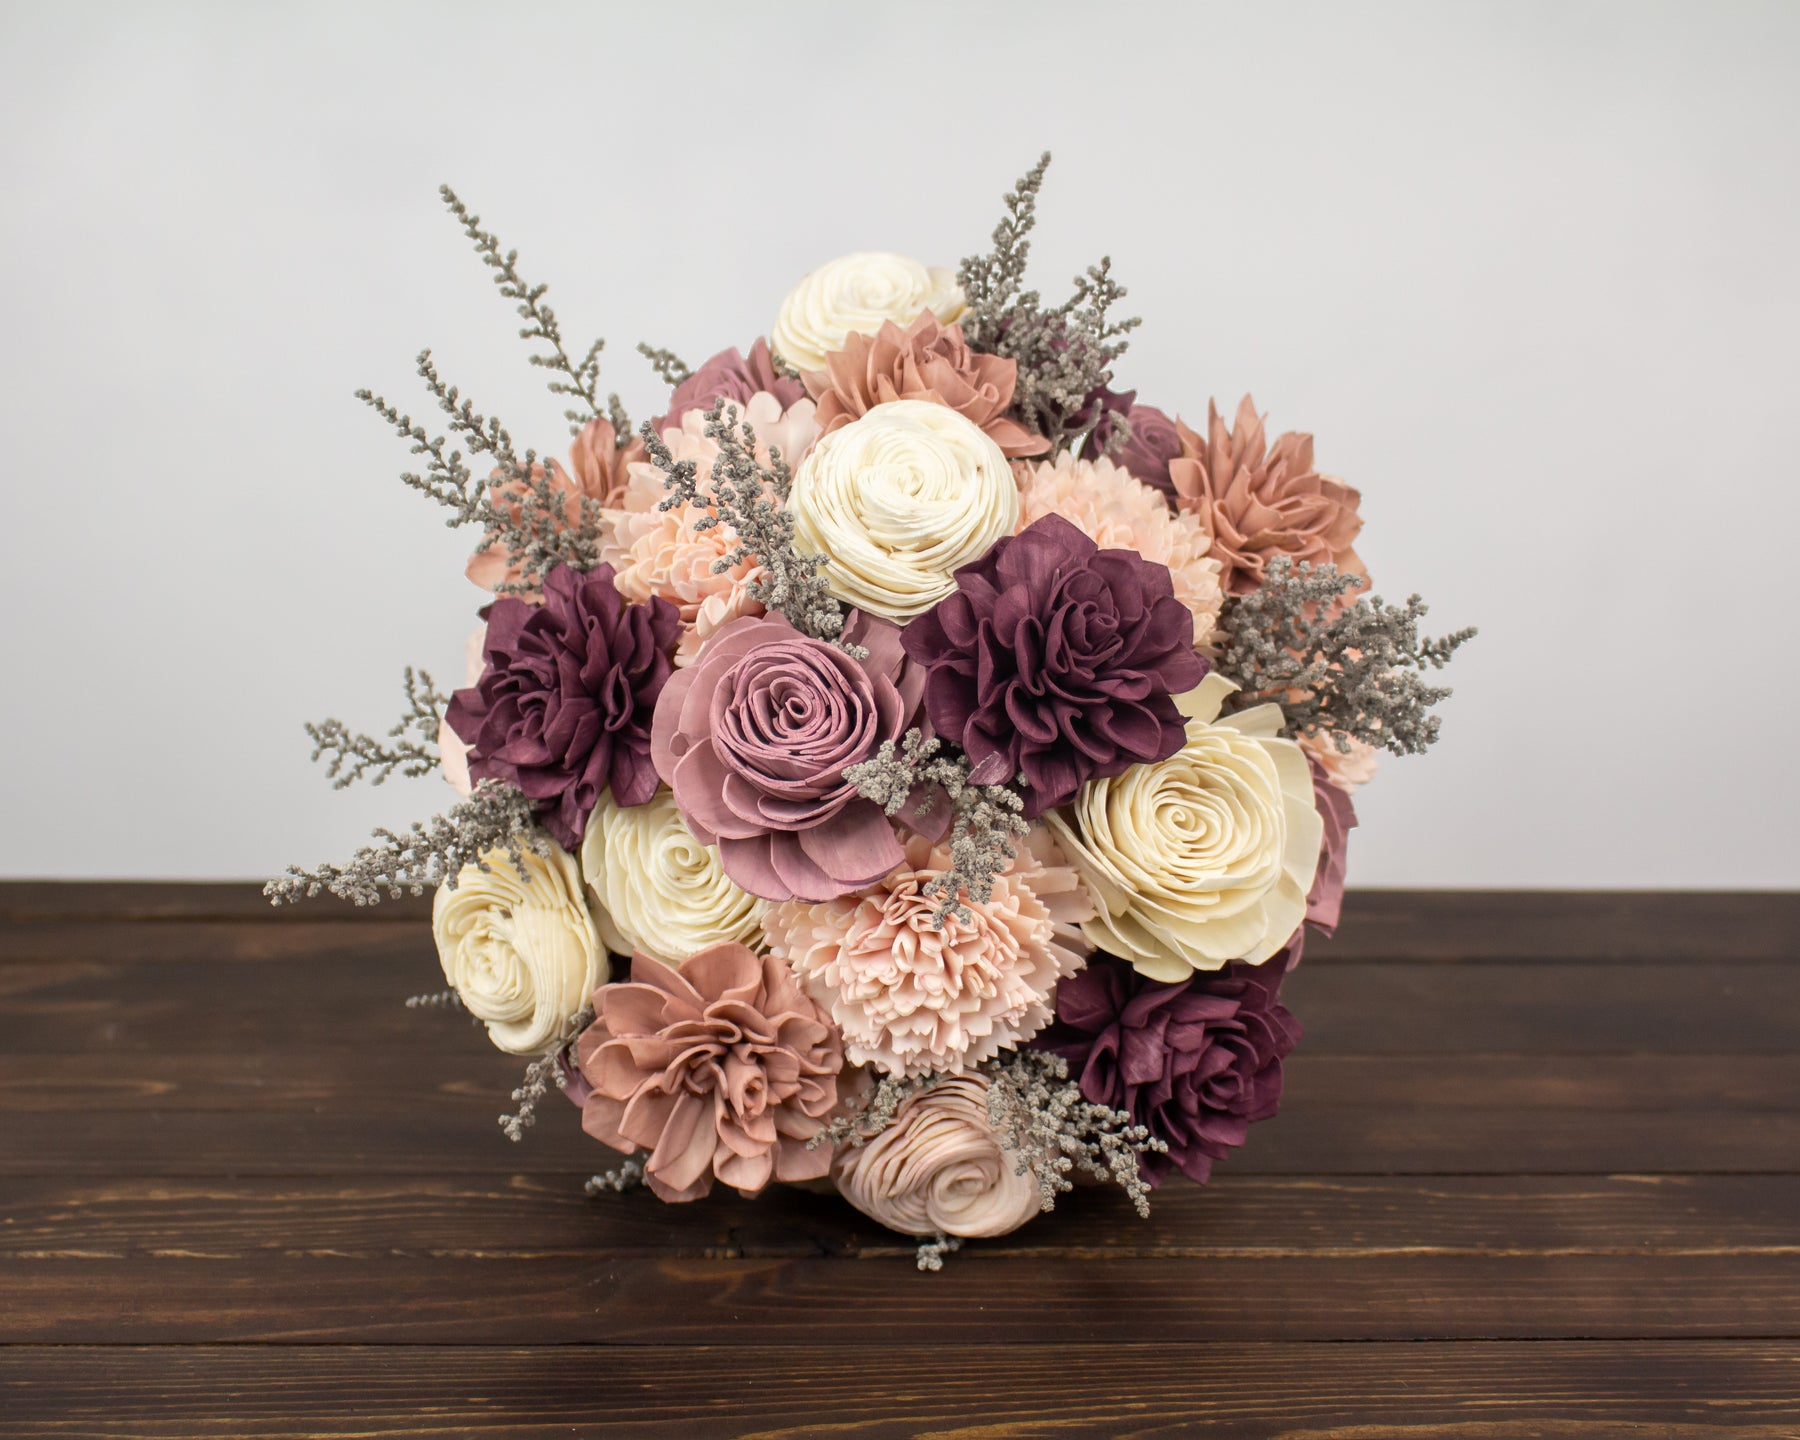 forever floral wooden flowers for mother's day